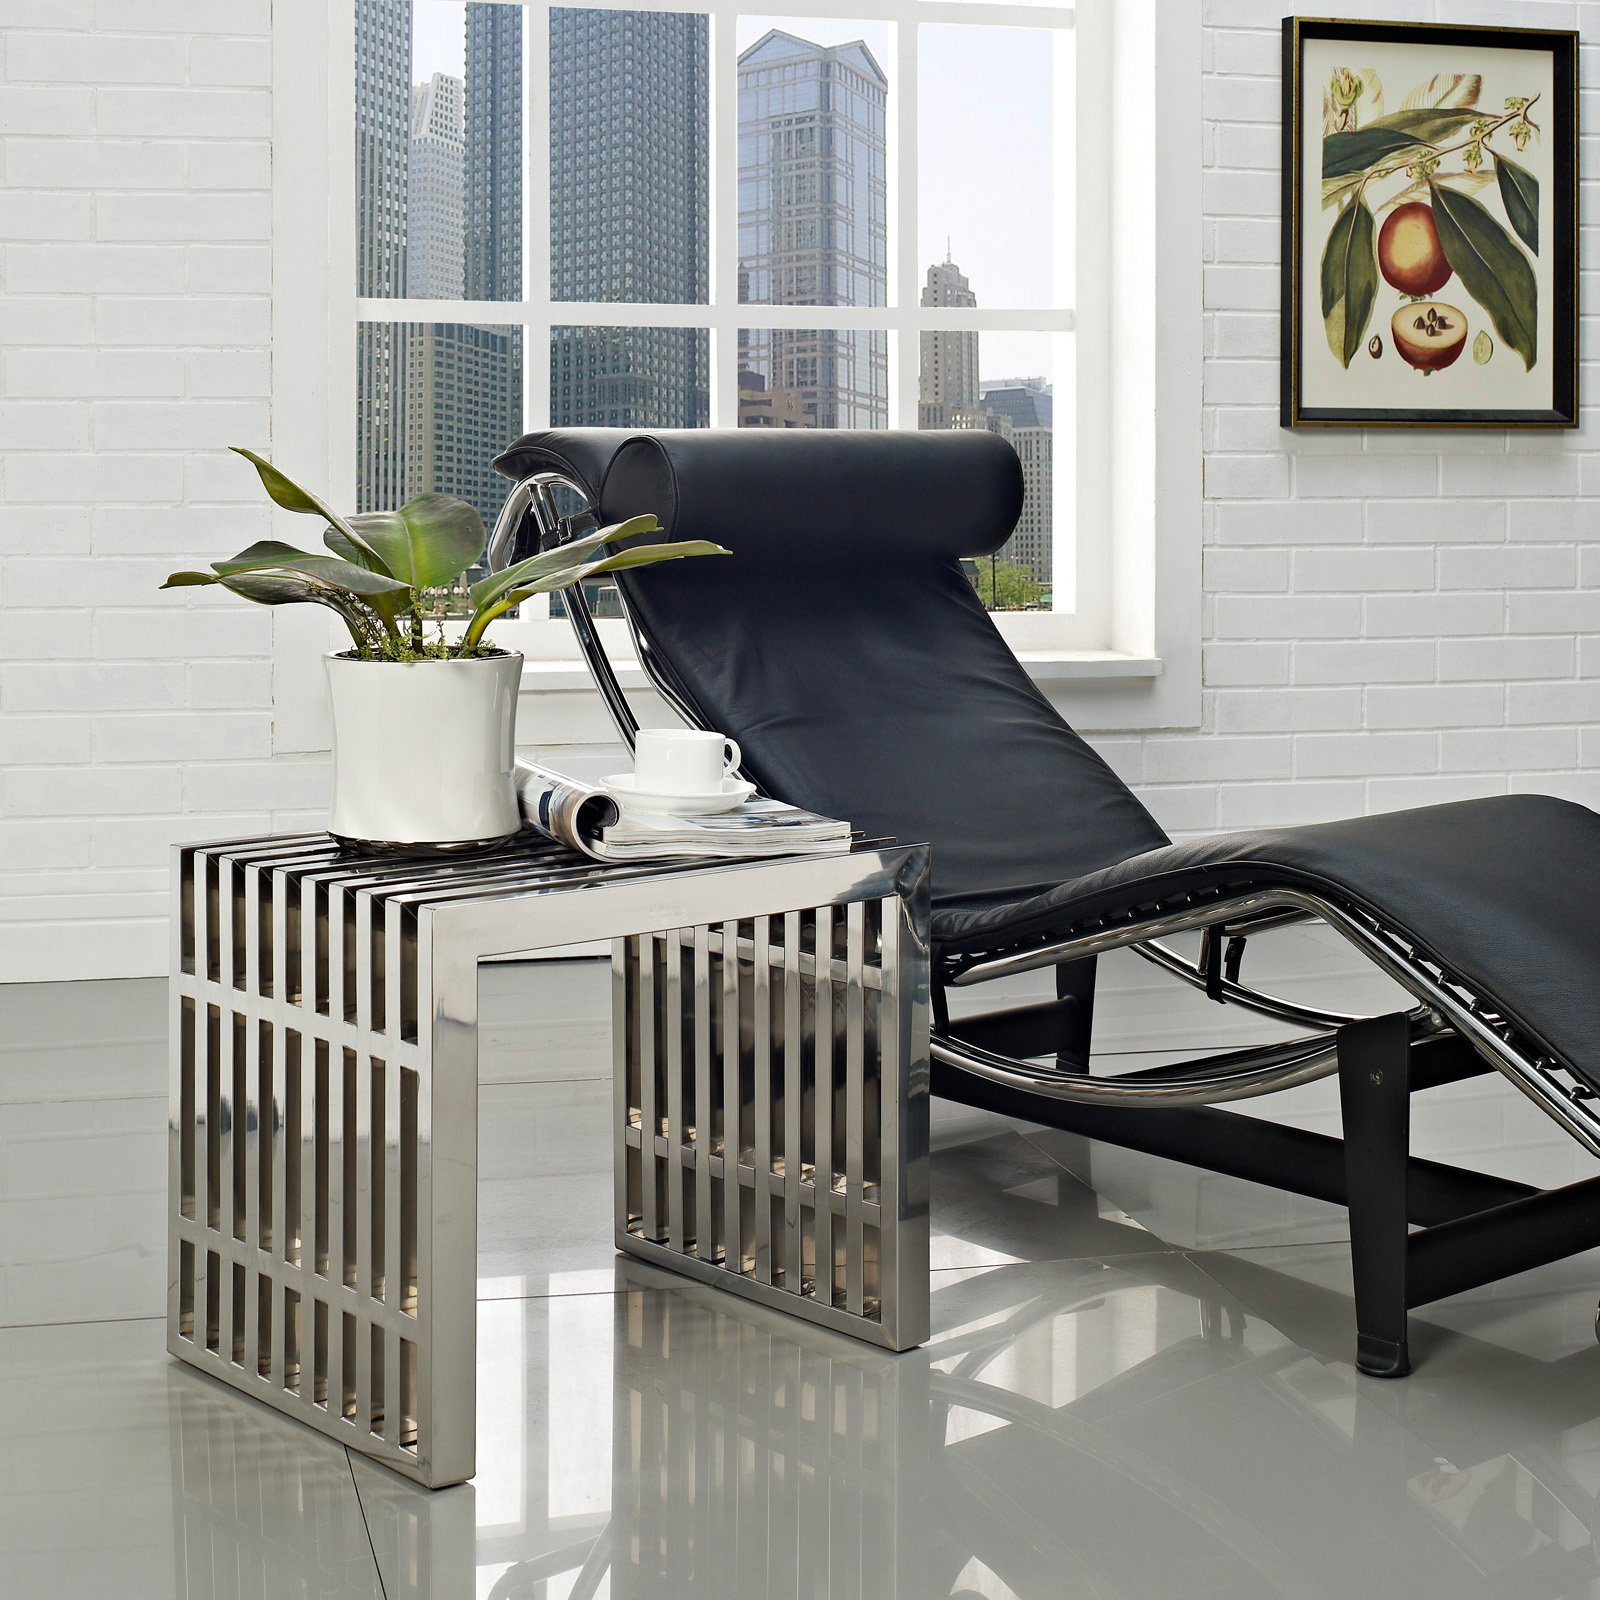 Modway Gridiron Small Stainless Steel Bench or Side Table in Silver